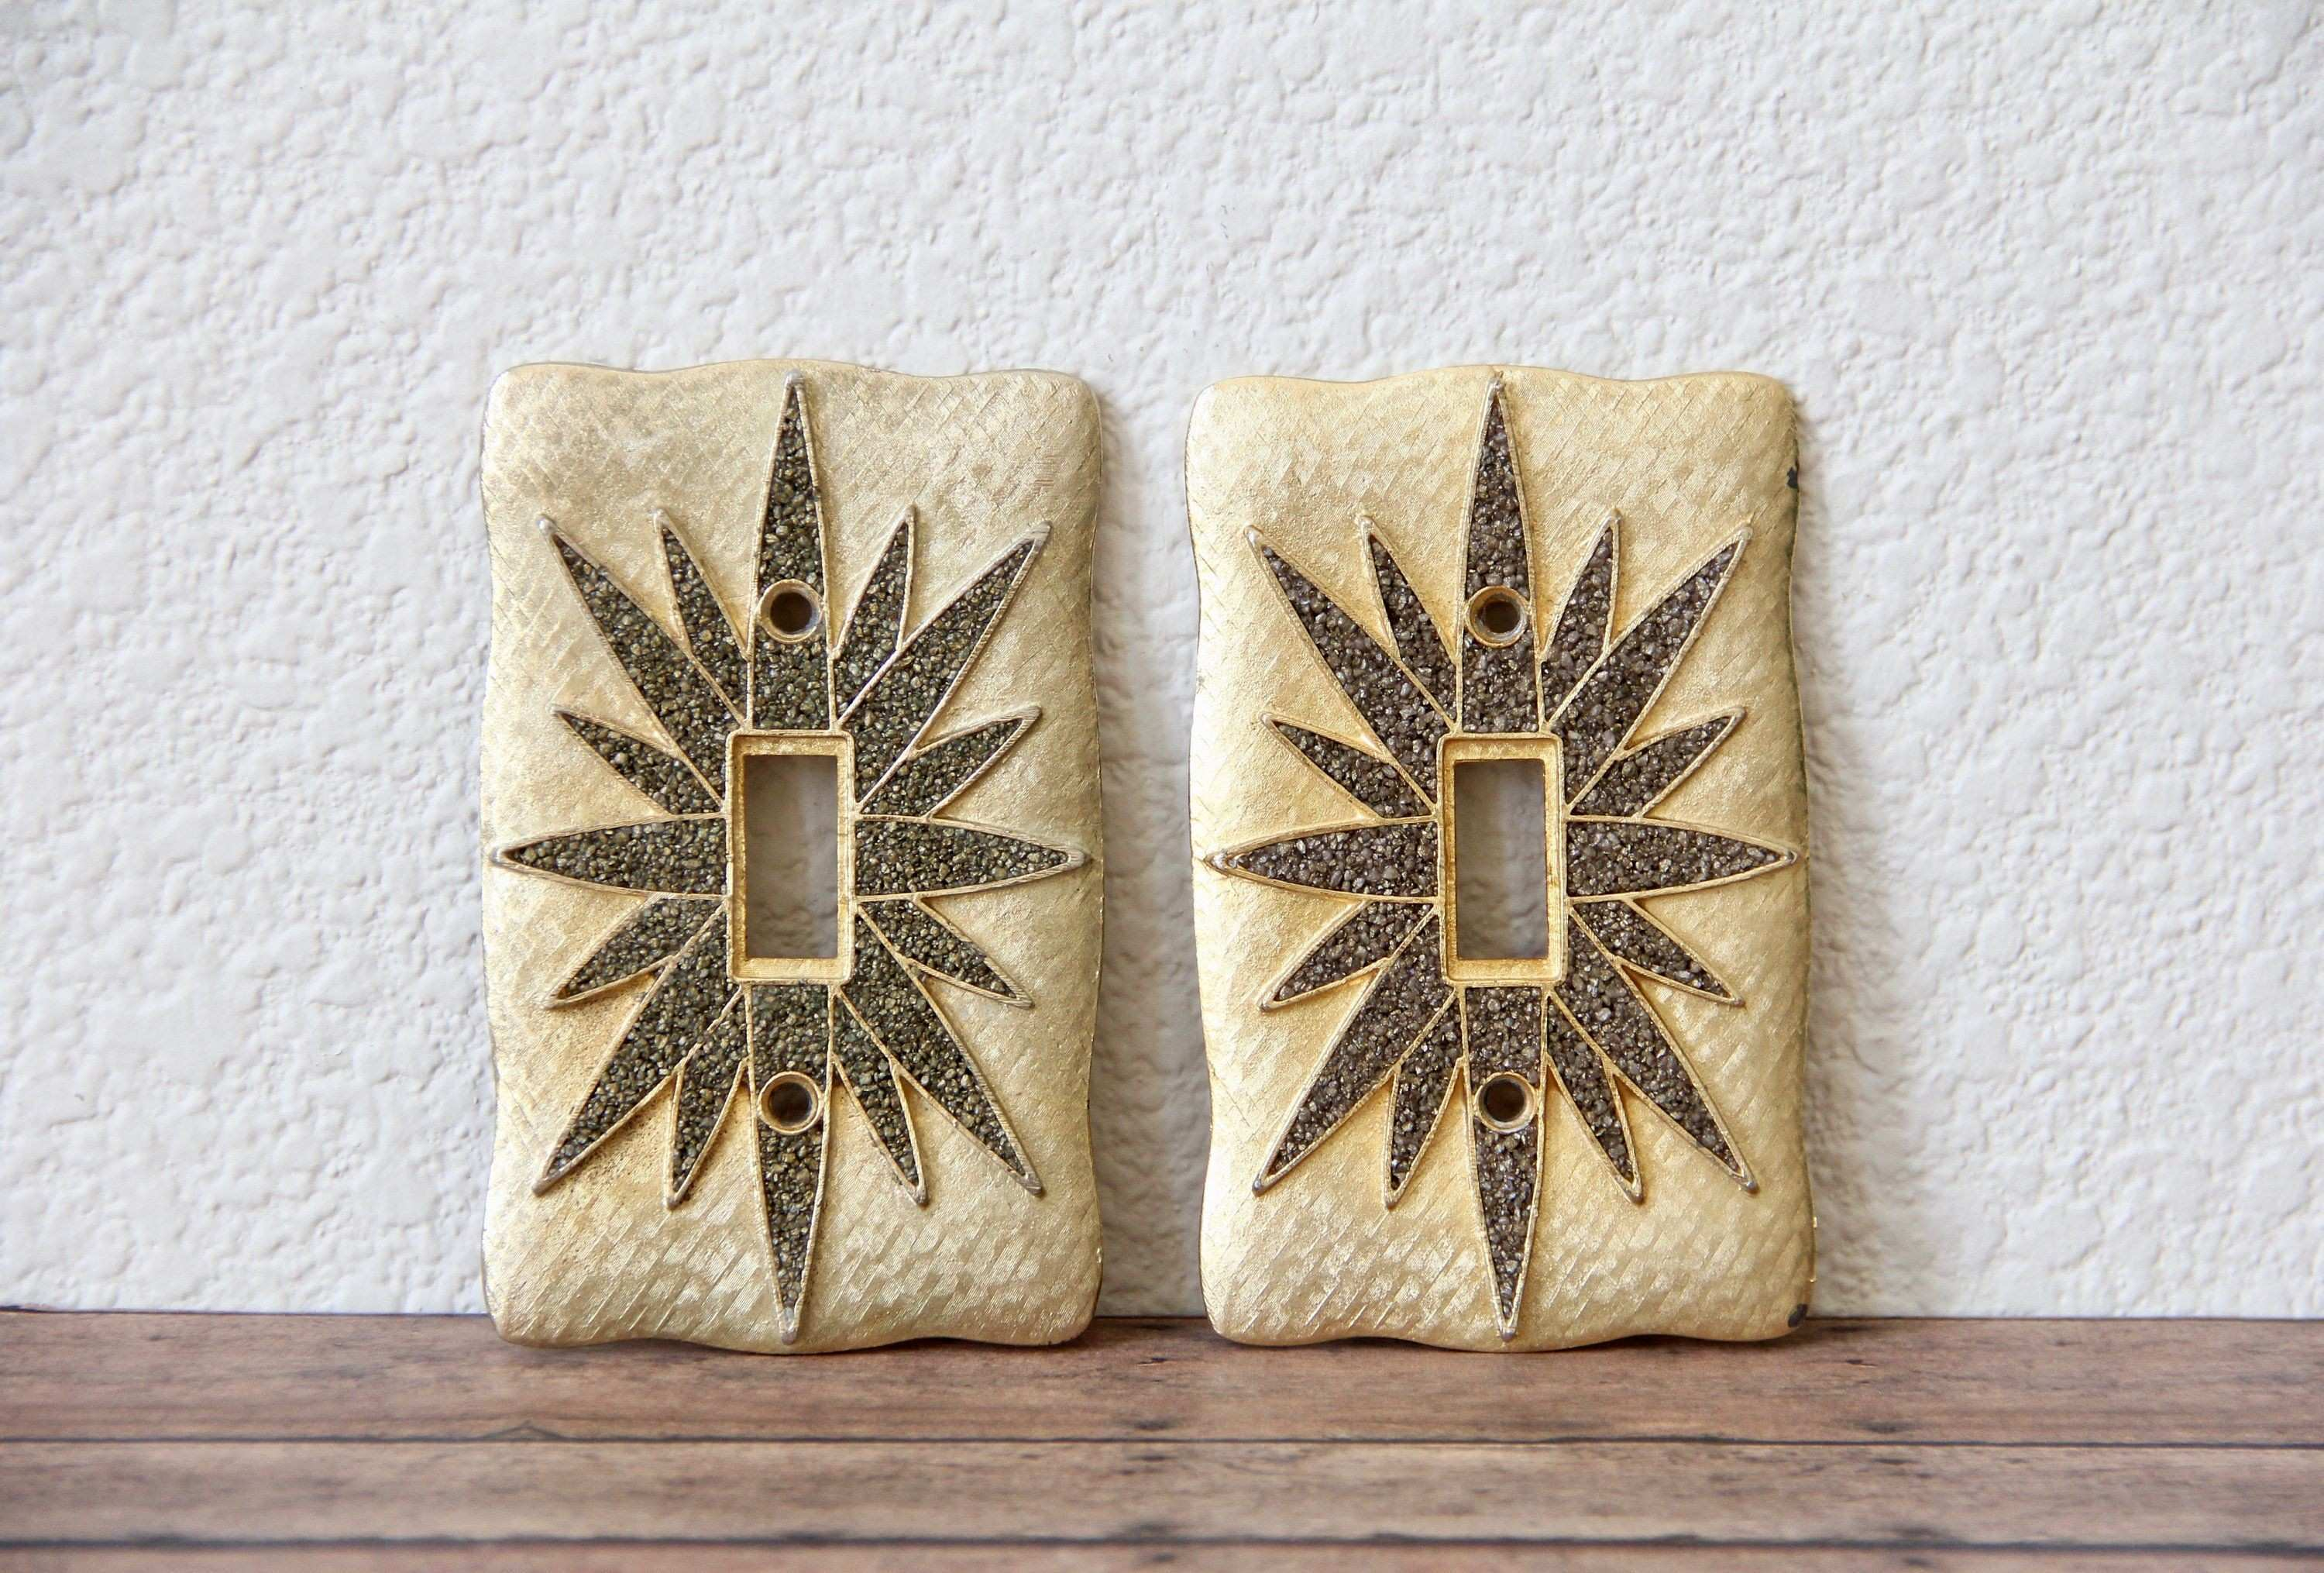 Gold Switch Plate Vintage Gold Switch Plates Mid Century Wall